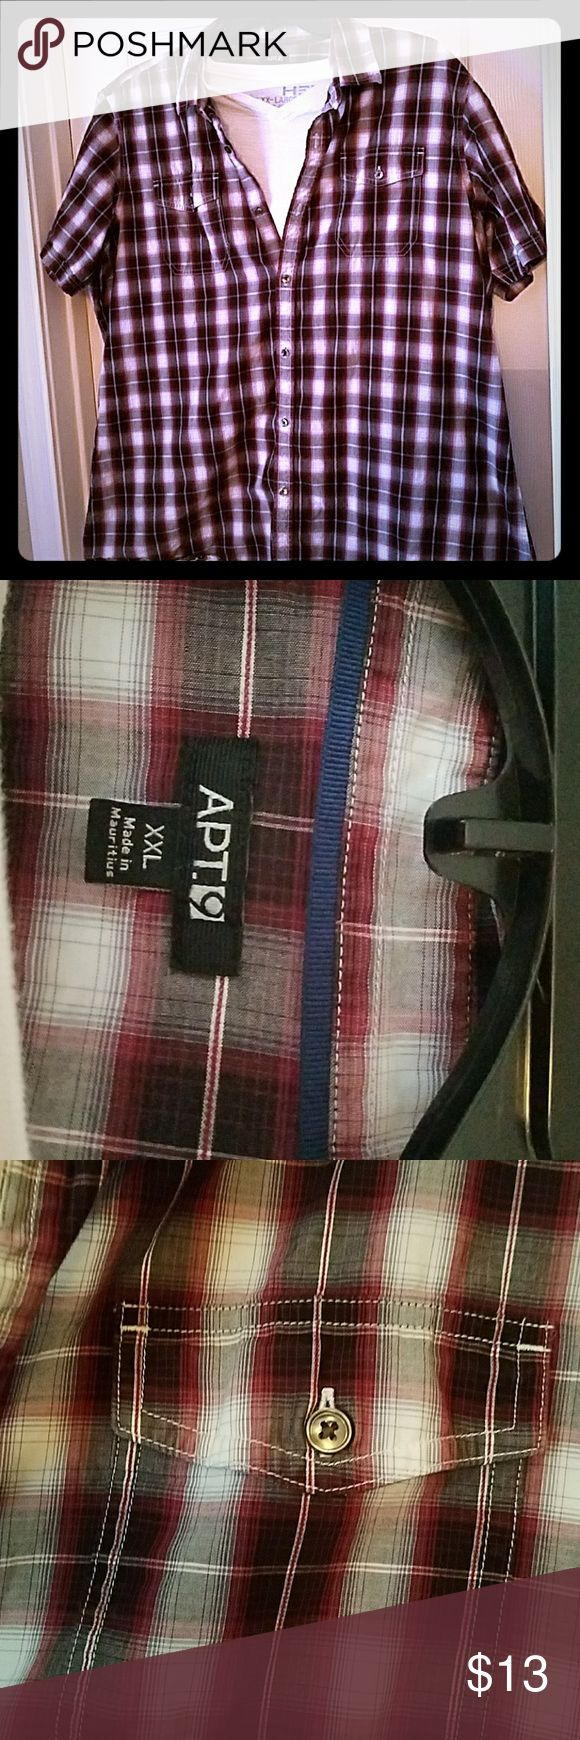 Young men's plaid 2x short sleeve shirt 2XL red, gray, white and black plaid shirt. 100% cotton.  Tradition front pockets with buttons. Great to dress up or down. Apt.9 Shirts Casual Button Down Shirts